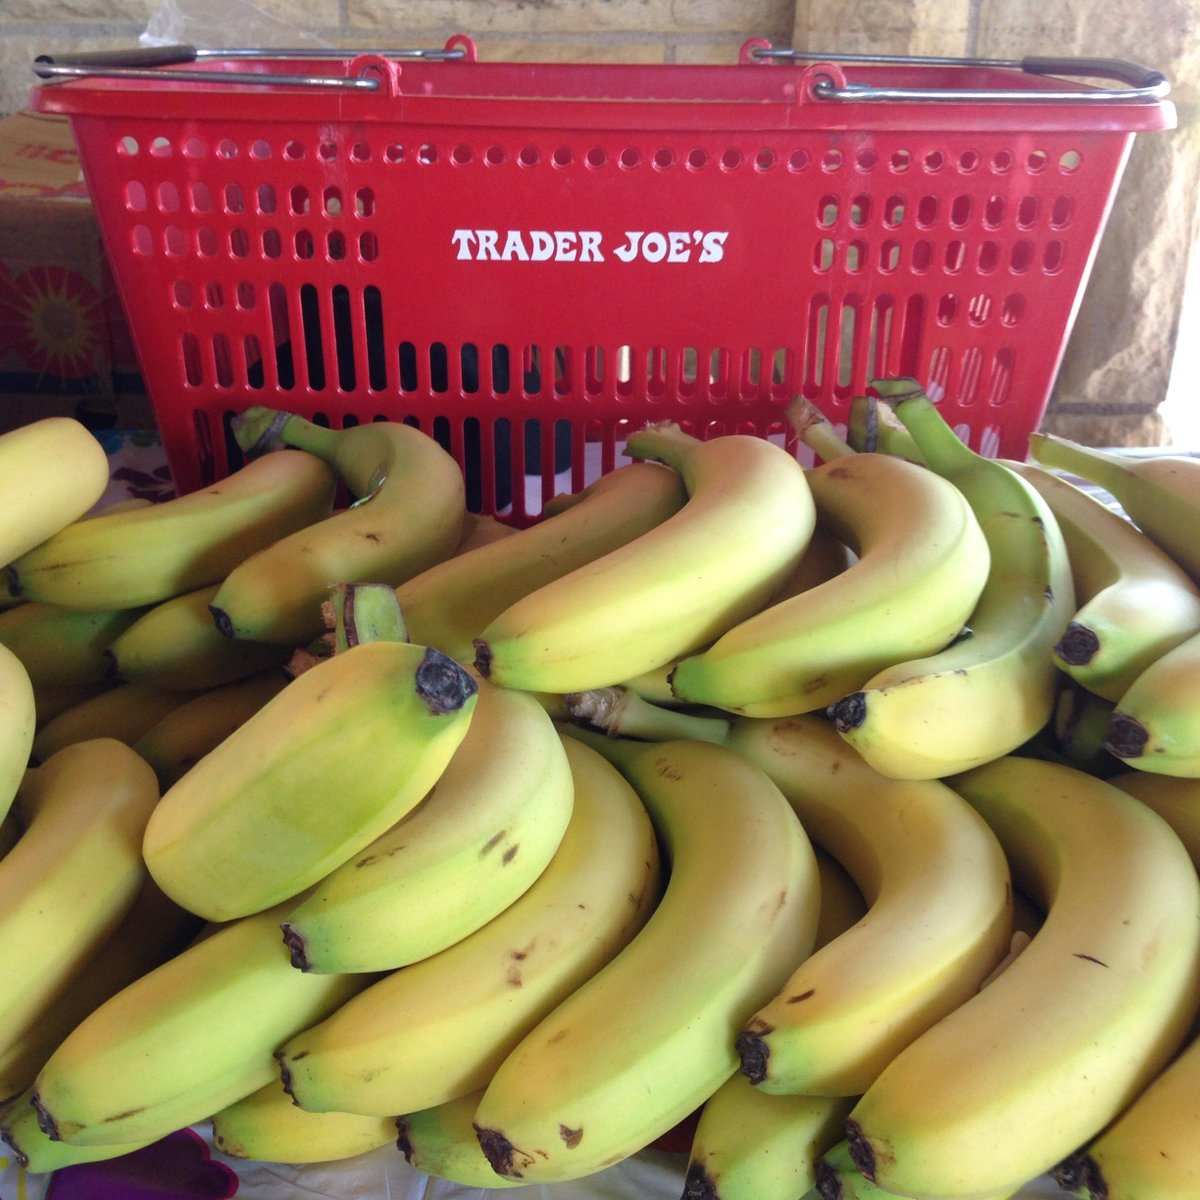 Colon Cancer Coalition On Twitter Thanks To Trader Joe S For Coming Out To Feed Everyone At Gyrigrochester On Saturday We Re Bananas About Them Http T Co Td77hb8c75